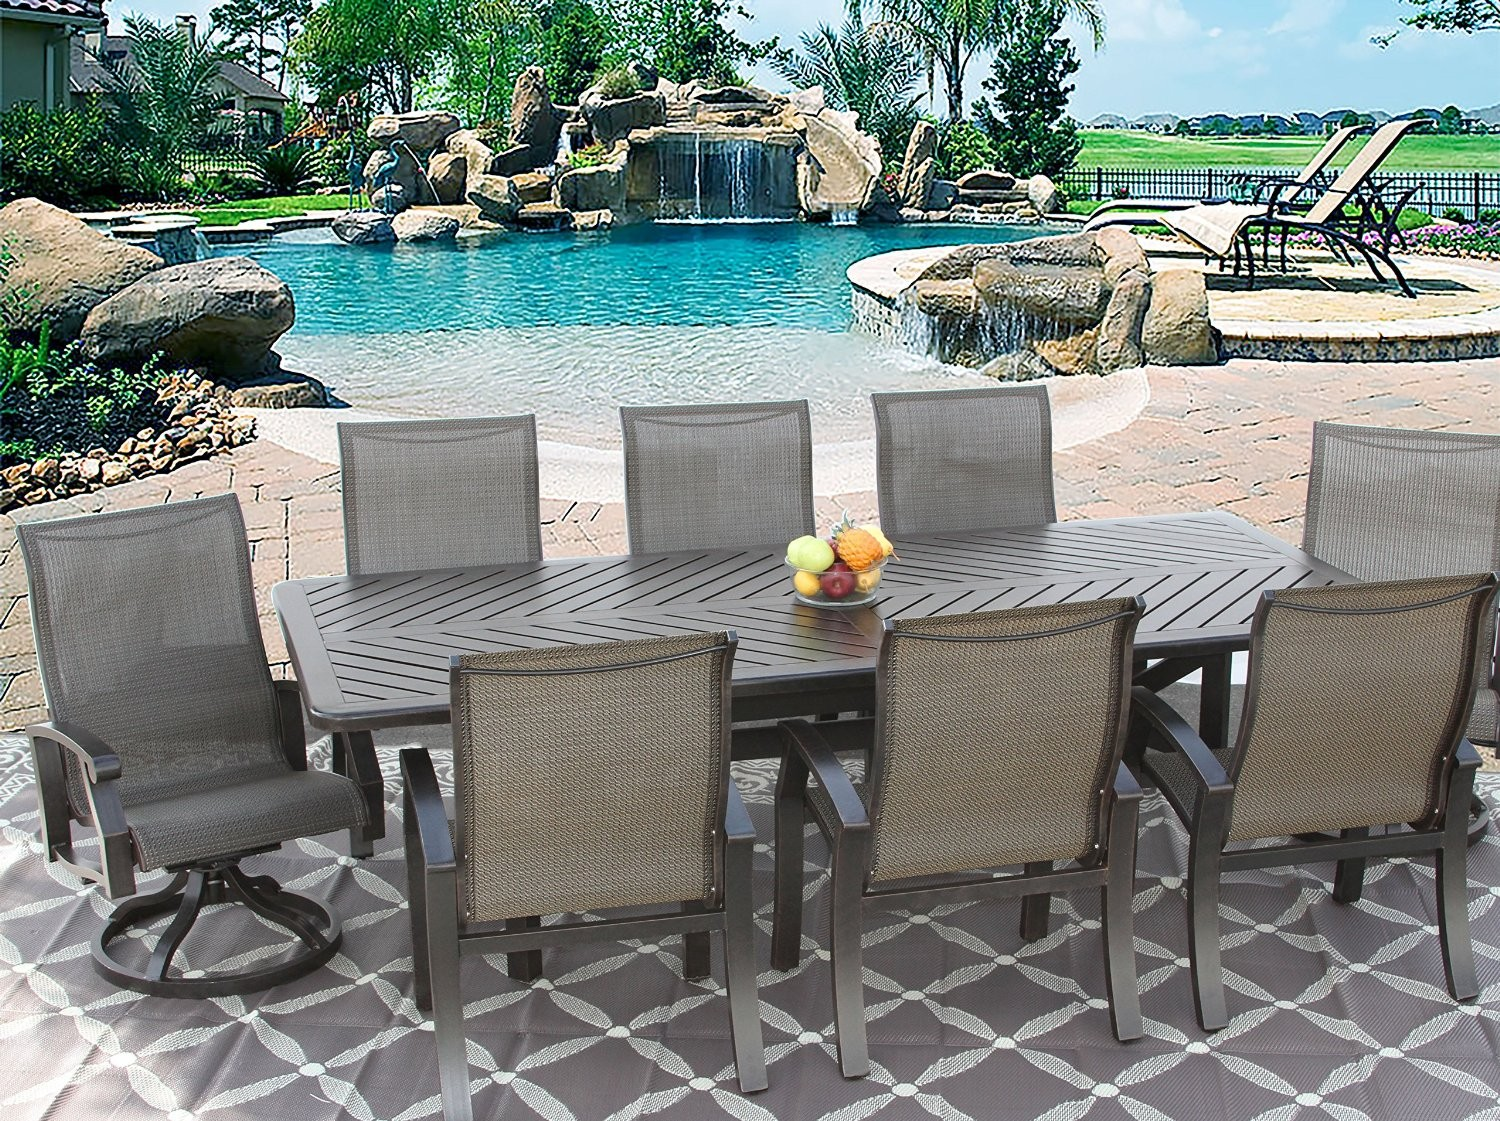 patio dining sets for 8 people photo - 2